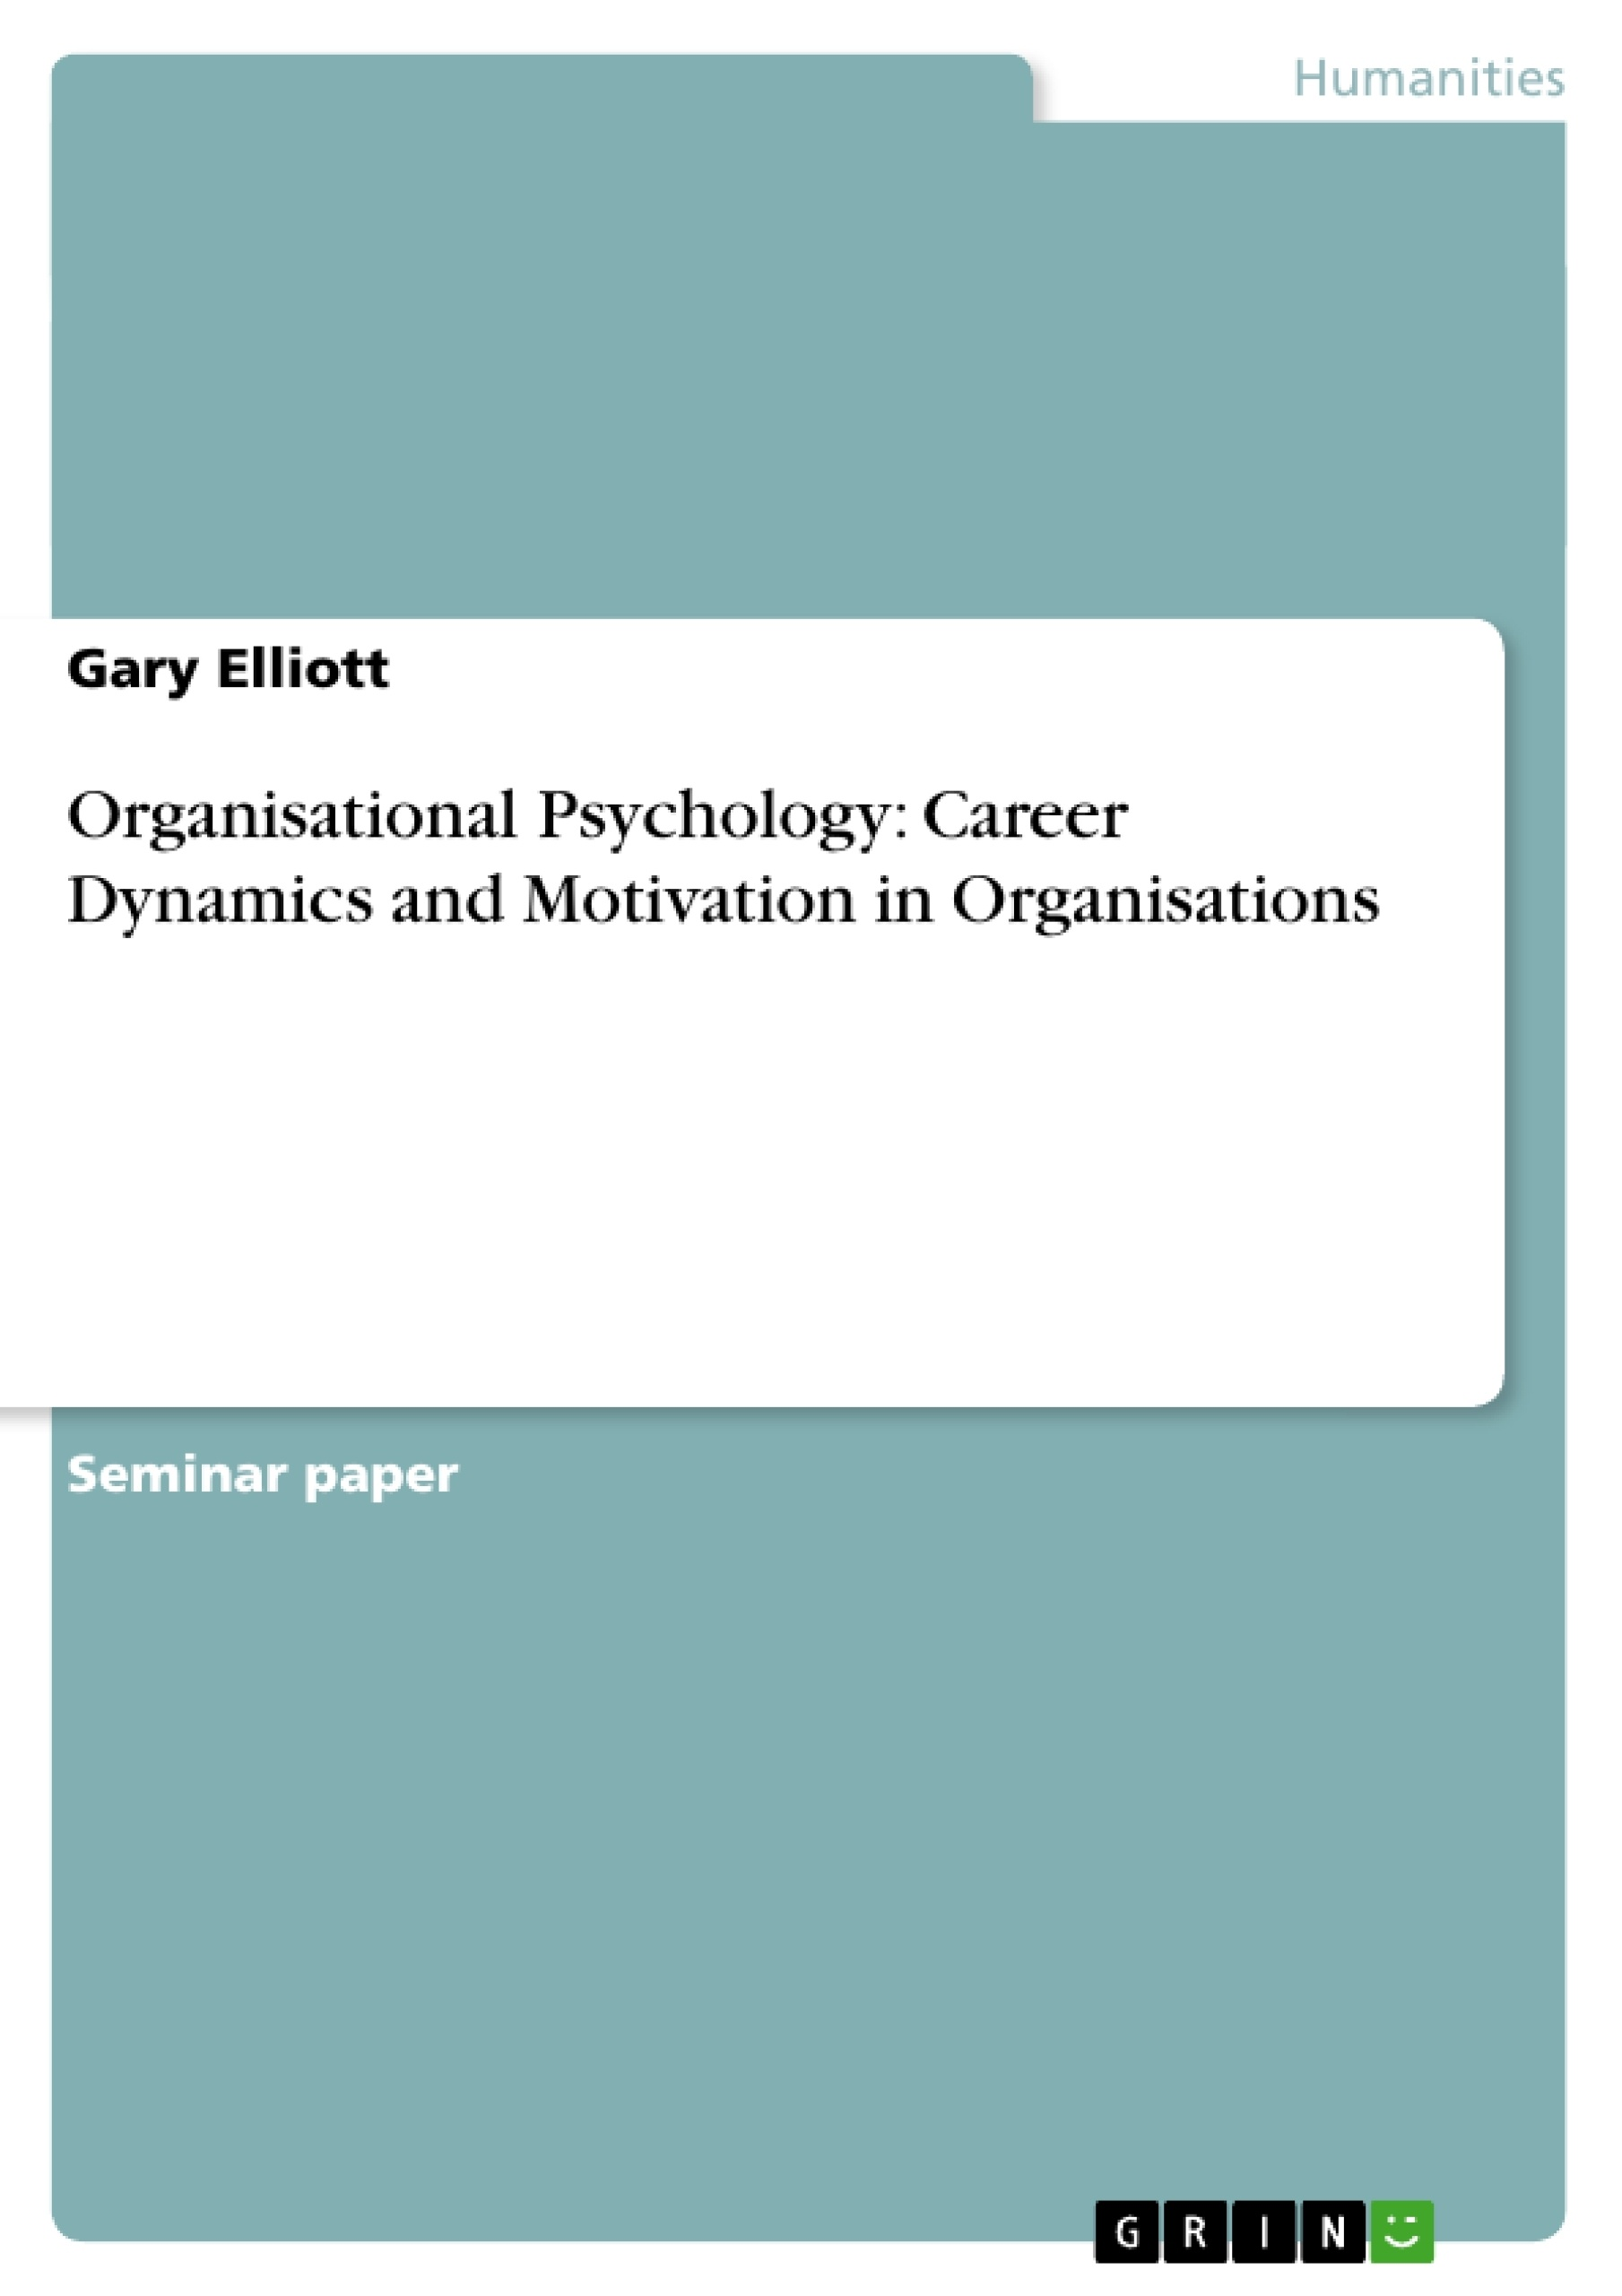 Title: Organisational Psychology: Career Dynamics and Motivation in Organisations